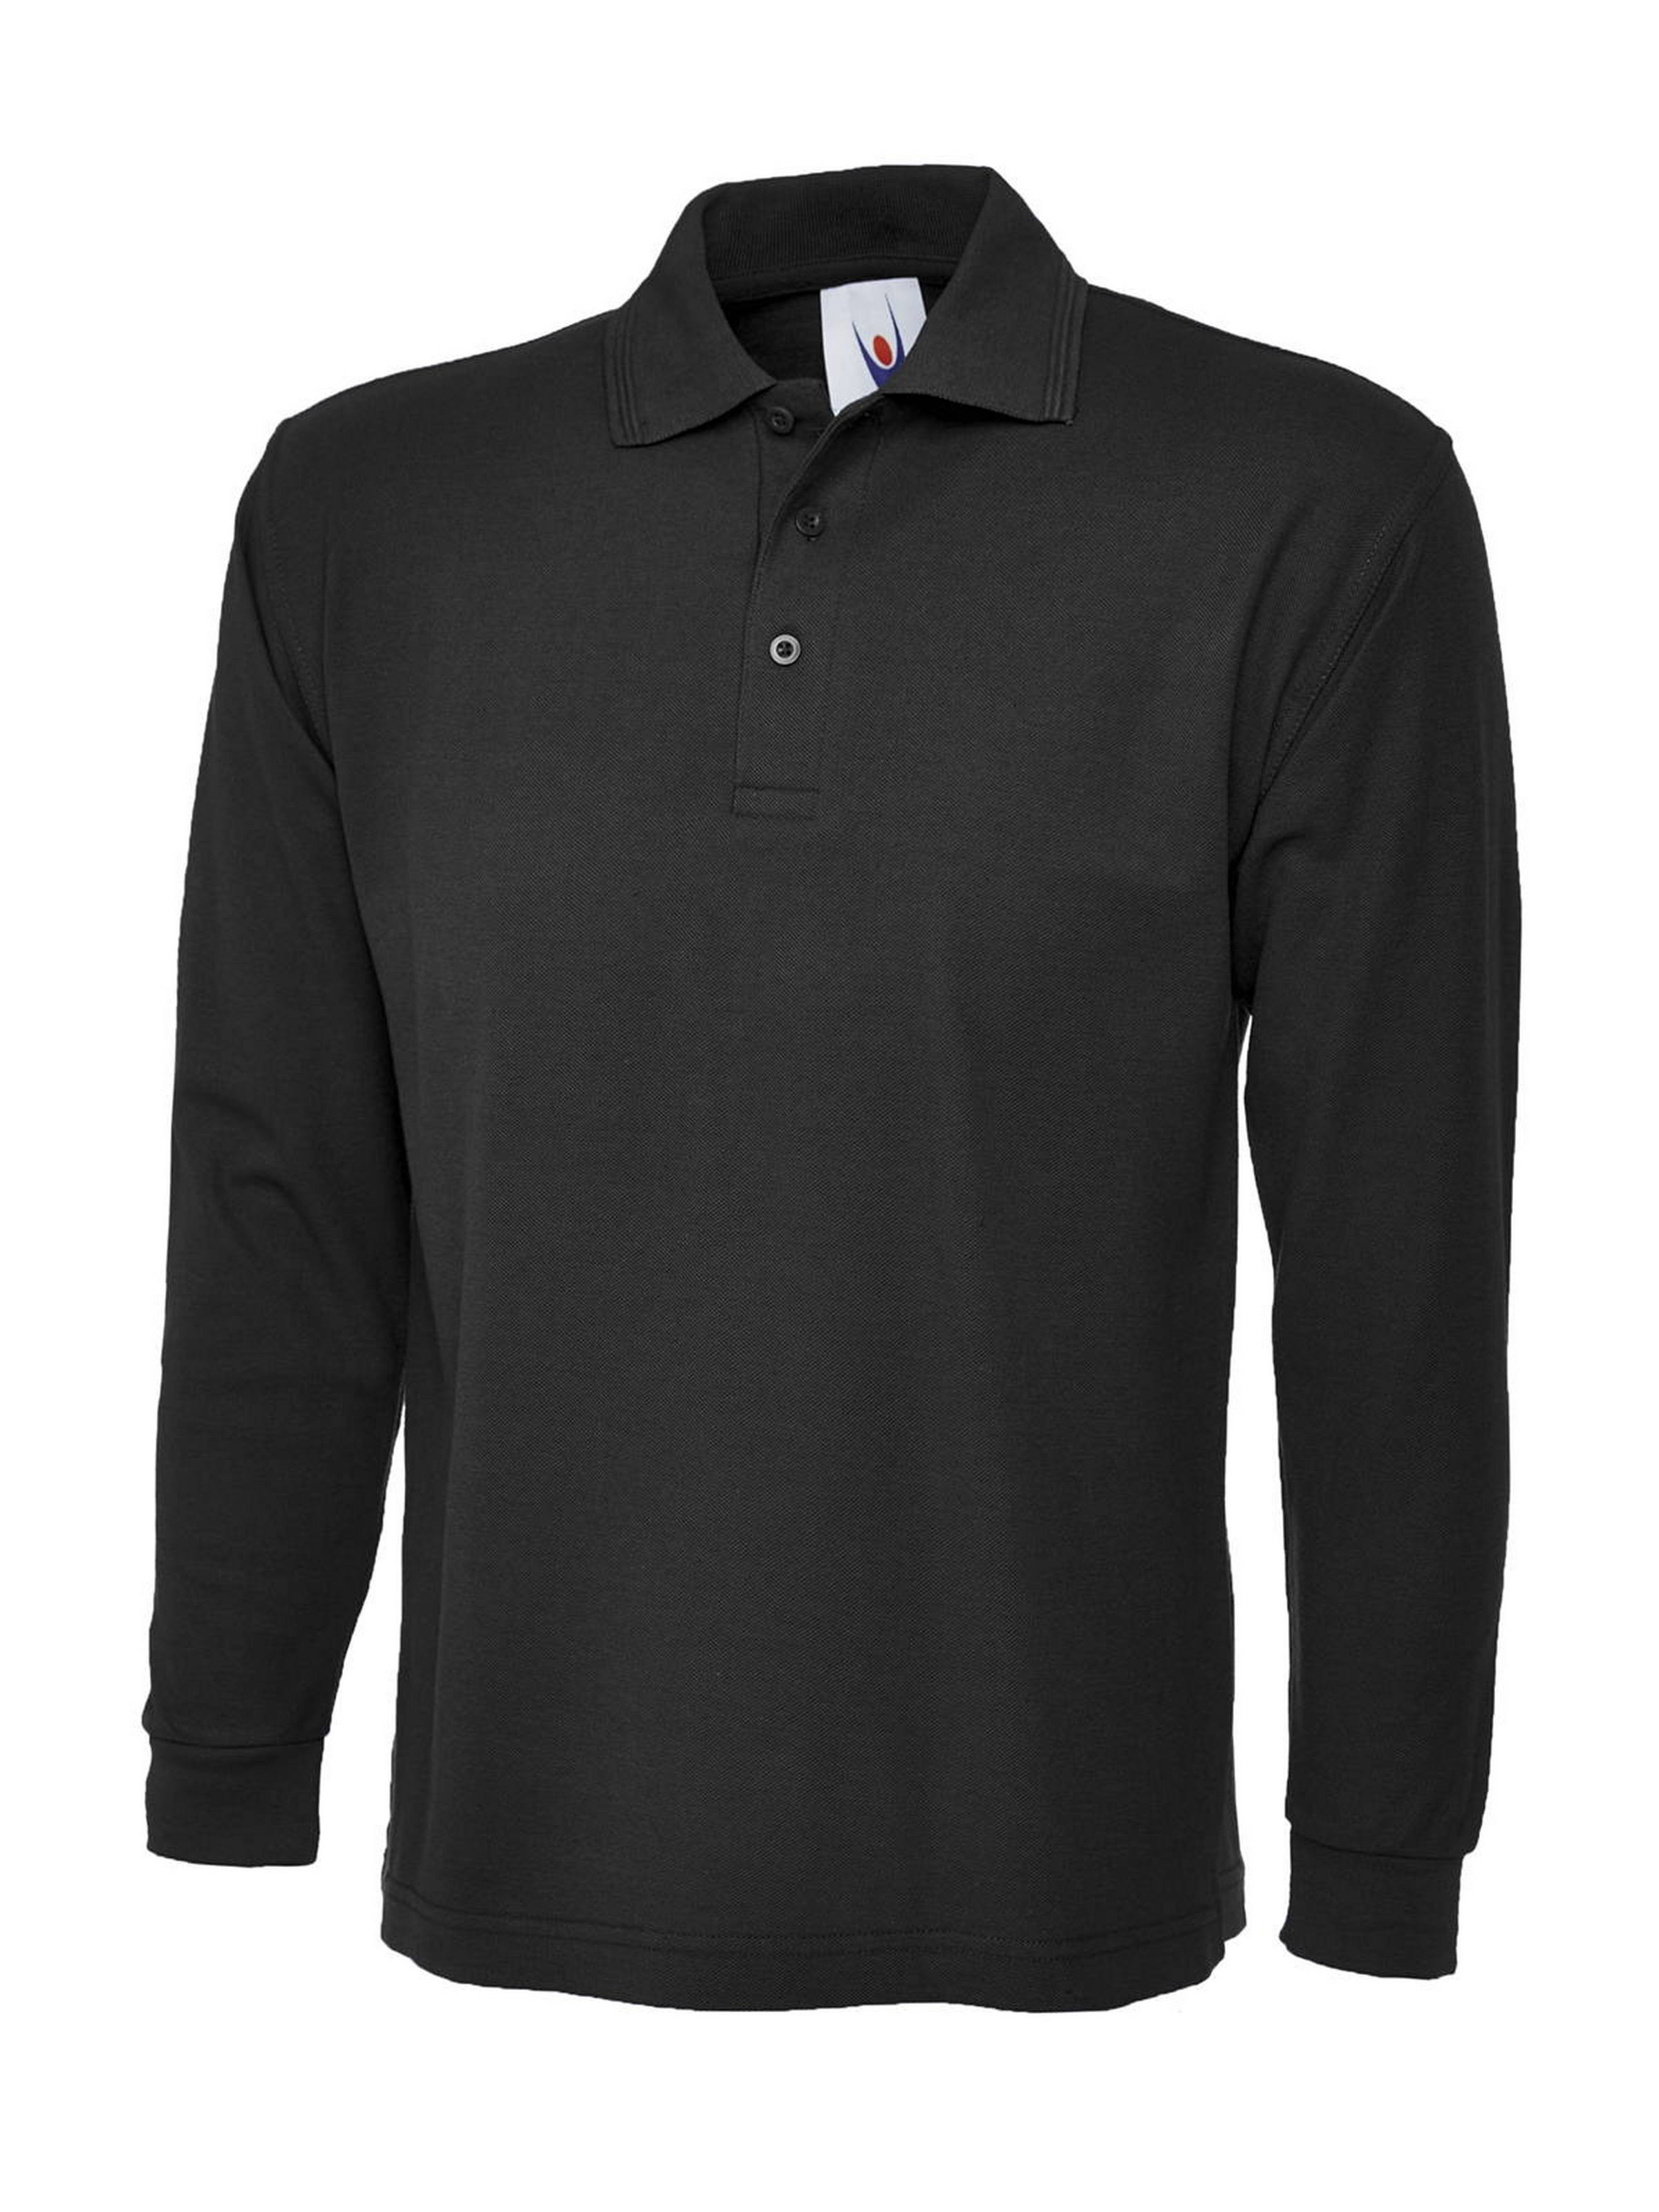 Uneek Long Sleeve Pique Polo Shirt